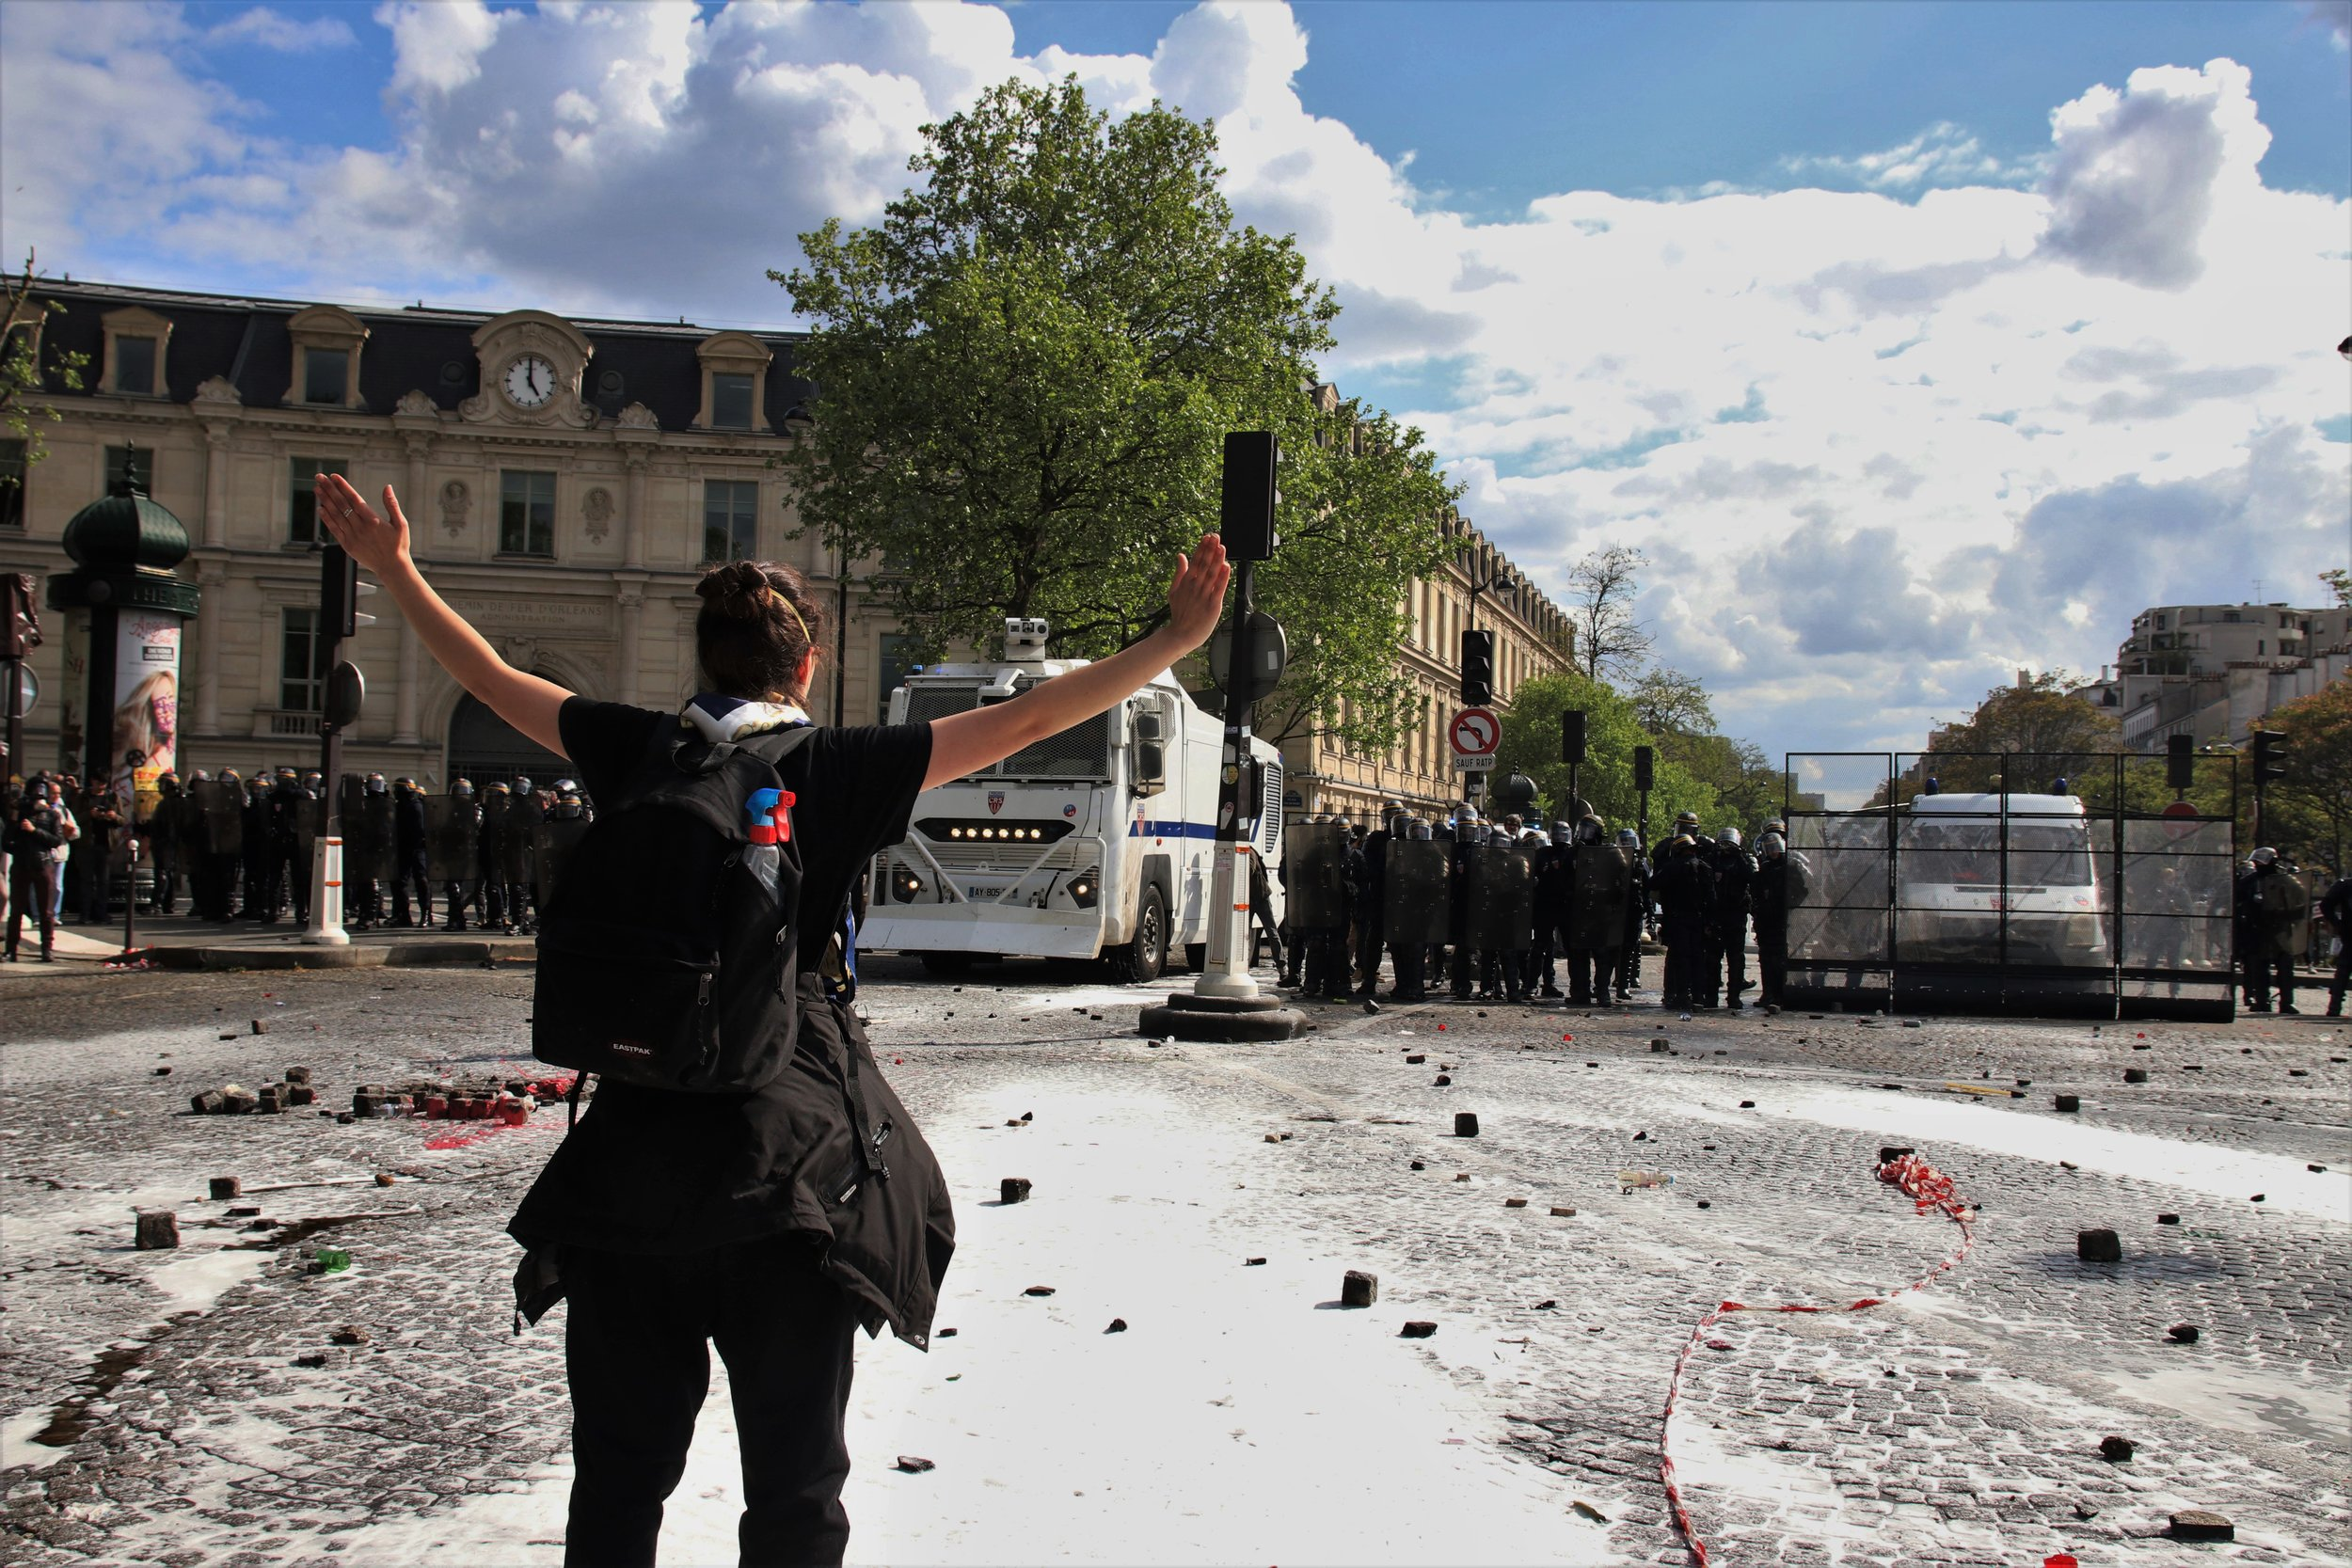 A protester stands in the way of the police advance